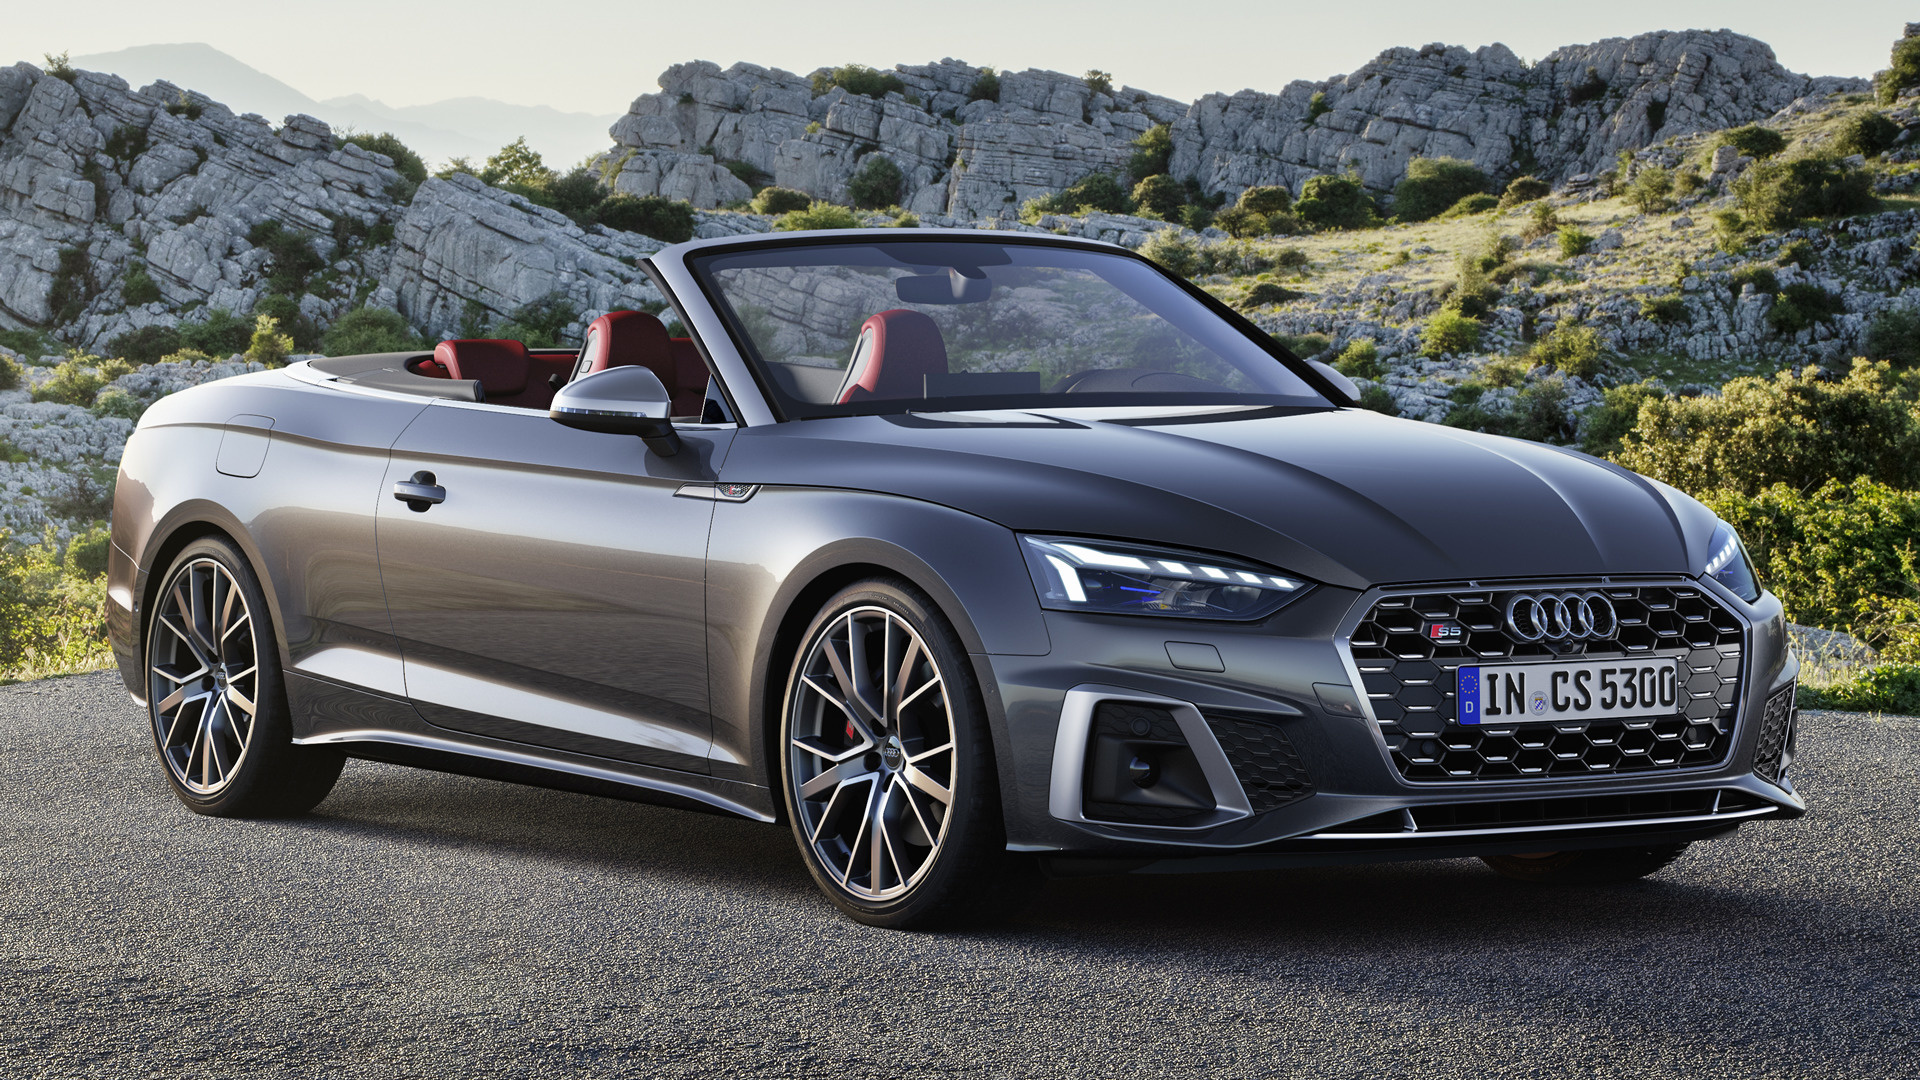 2020 Audi S5 Cabriolet Wallpapers And Hd Images Car Pixel